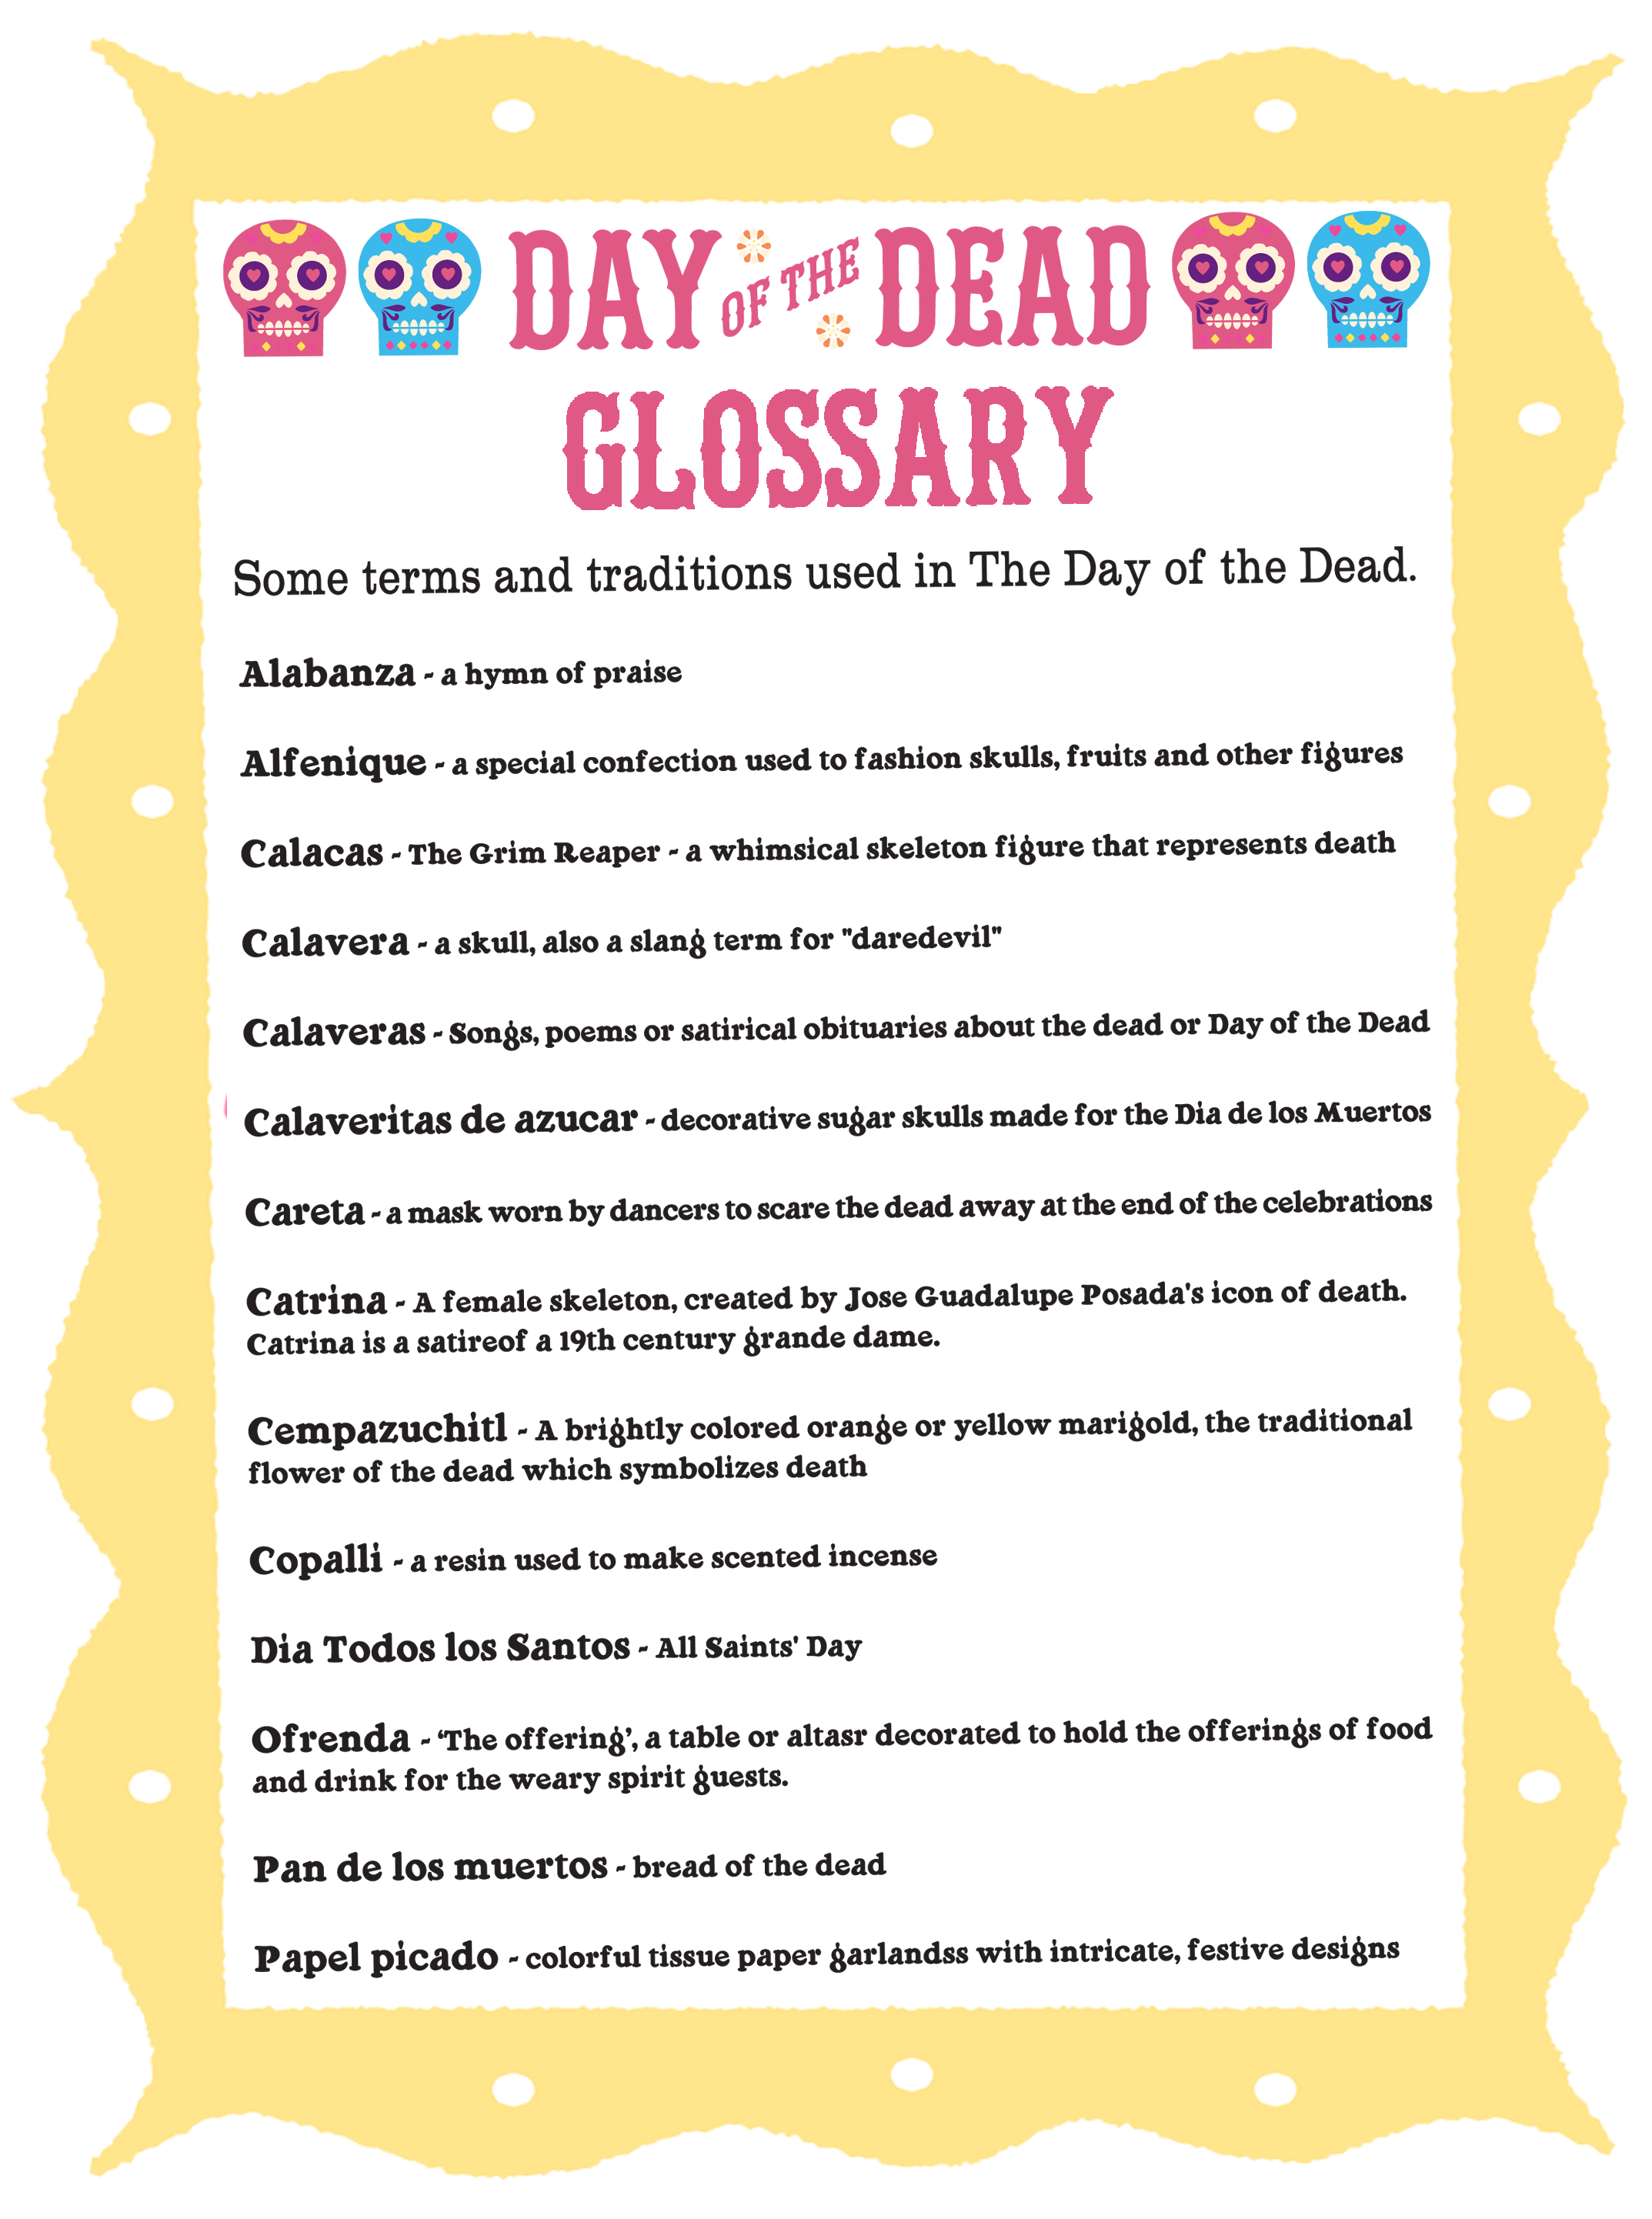 Worksheets Day Of The Dead Worksheets day of the dead glossary dia de los muertos terms traditions download a concise using form here